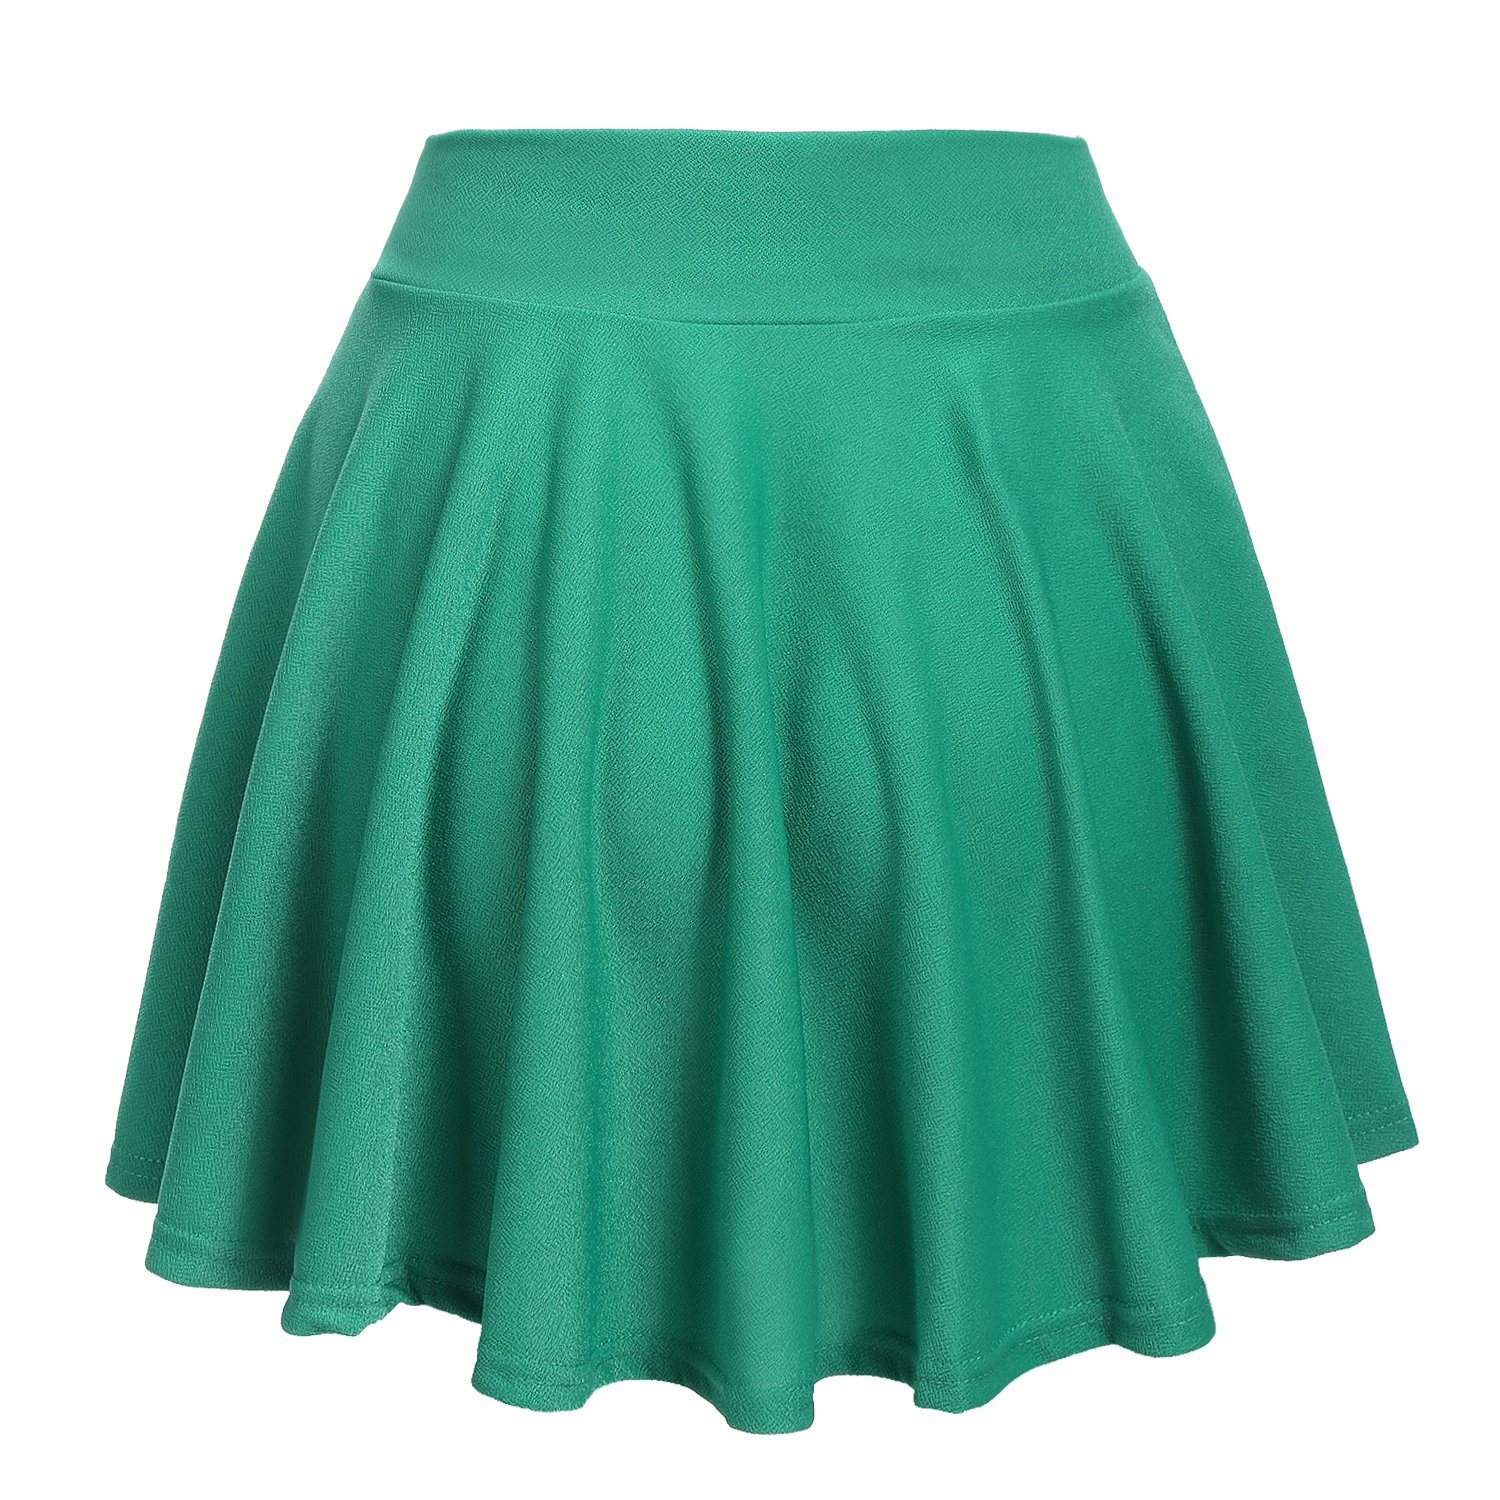 6ade9d2327cc52 ACEVOG Women's Casual Basic Versatile Stretchy Waist Flared Mini Skater  Skirt at Amazon Women's Clothing store: